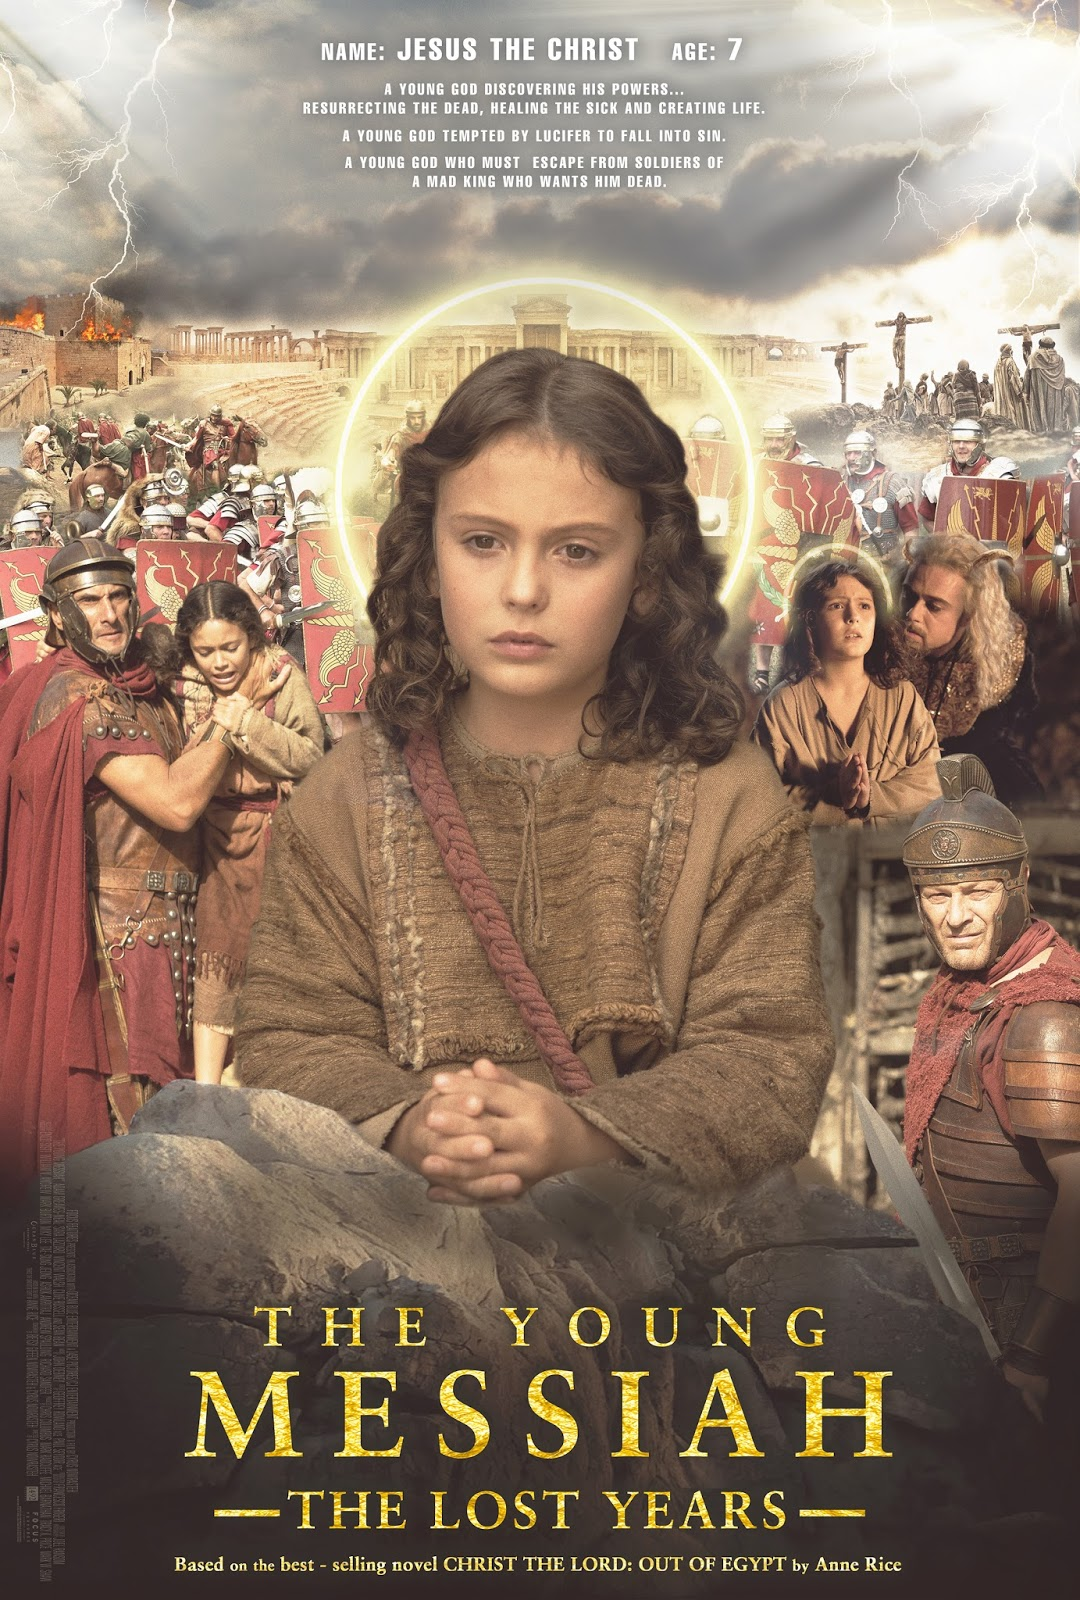 Pelikula Ngayon: Now Showing: THE YOUNG MESSIAH from Pioneer